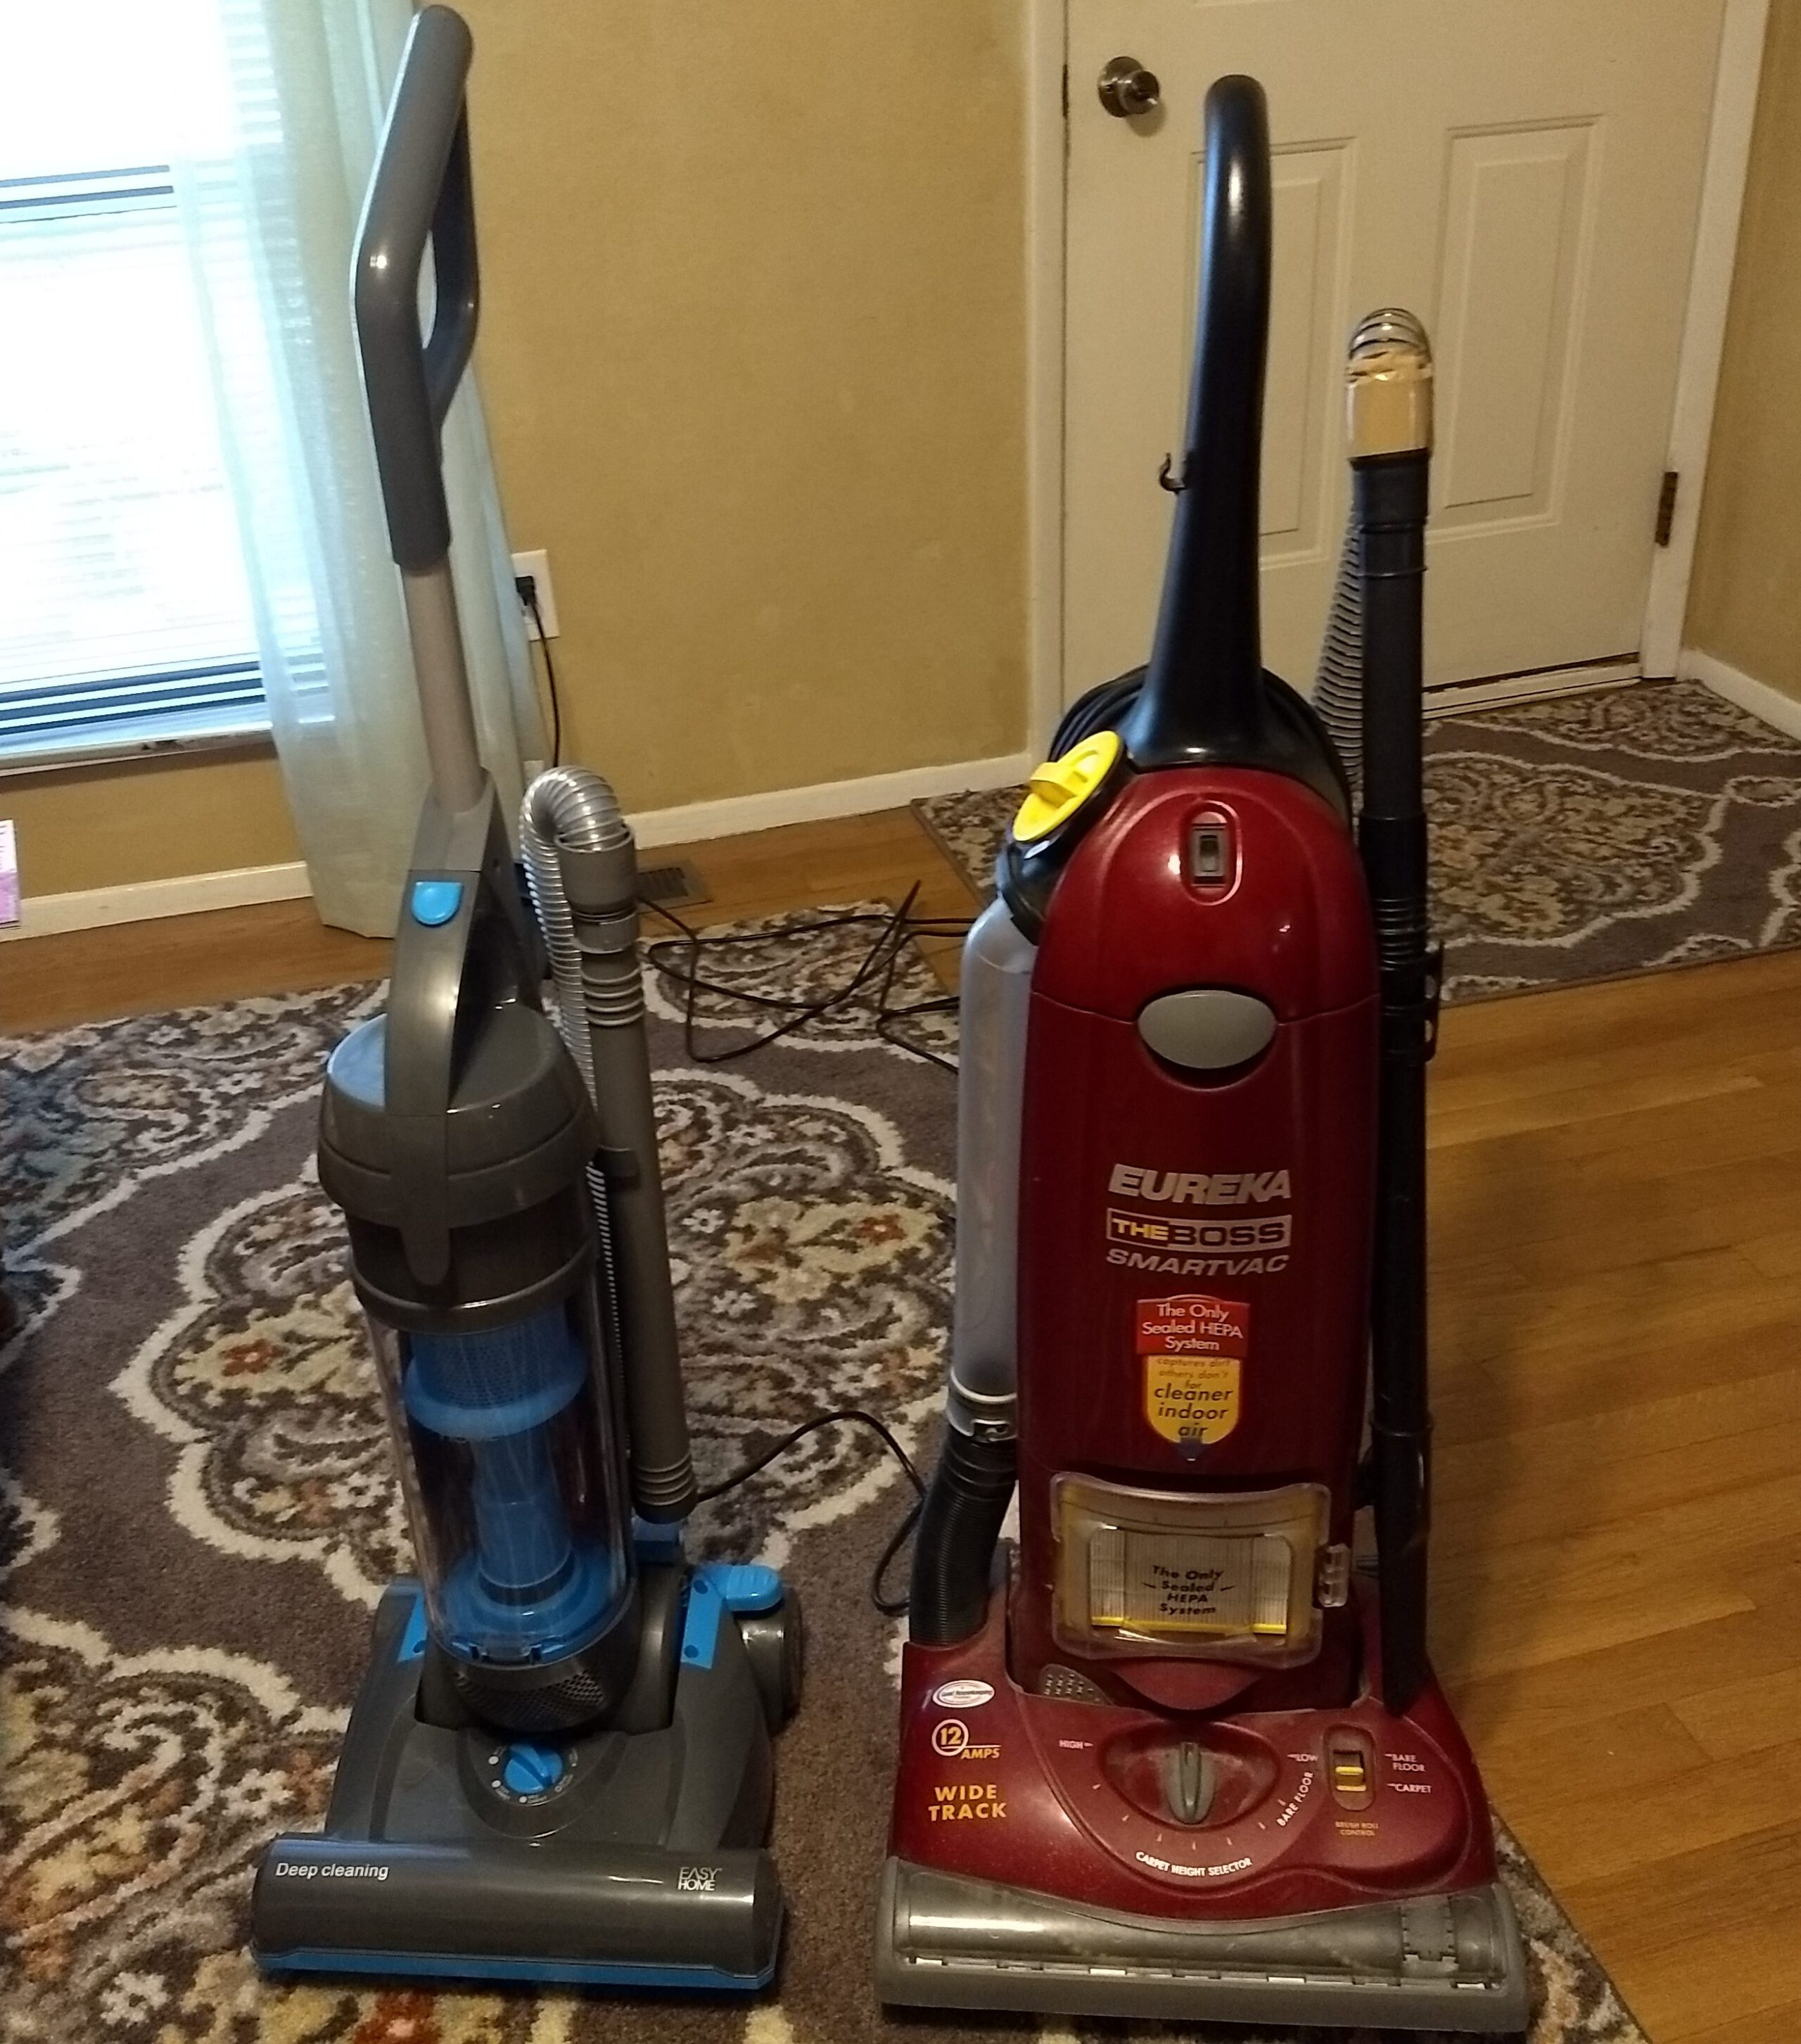 Review of Eureka 431A Optima Bagless Upright Vacuum